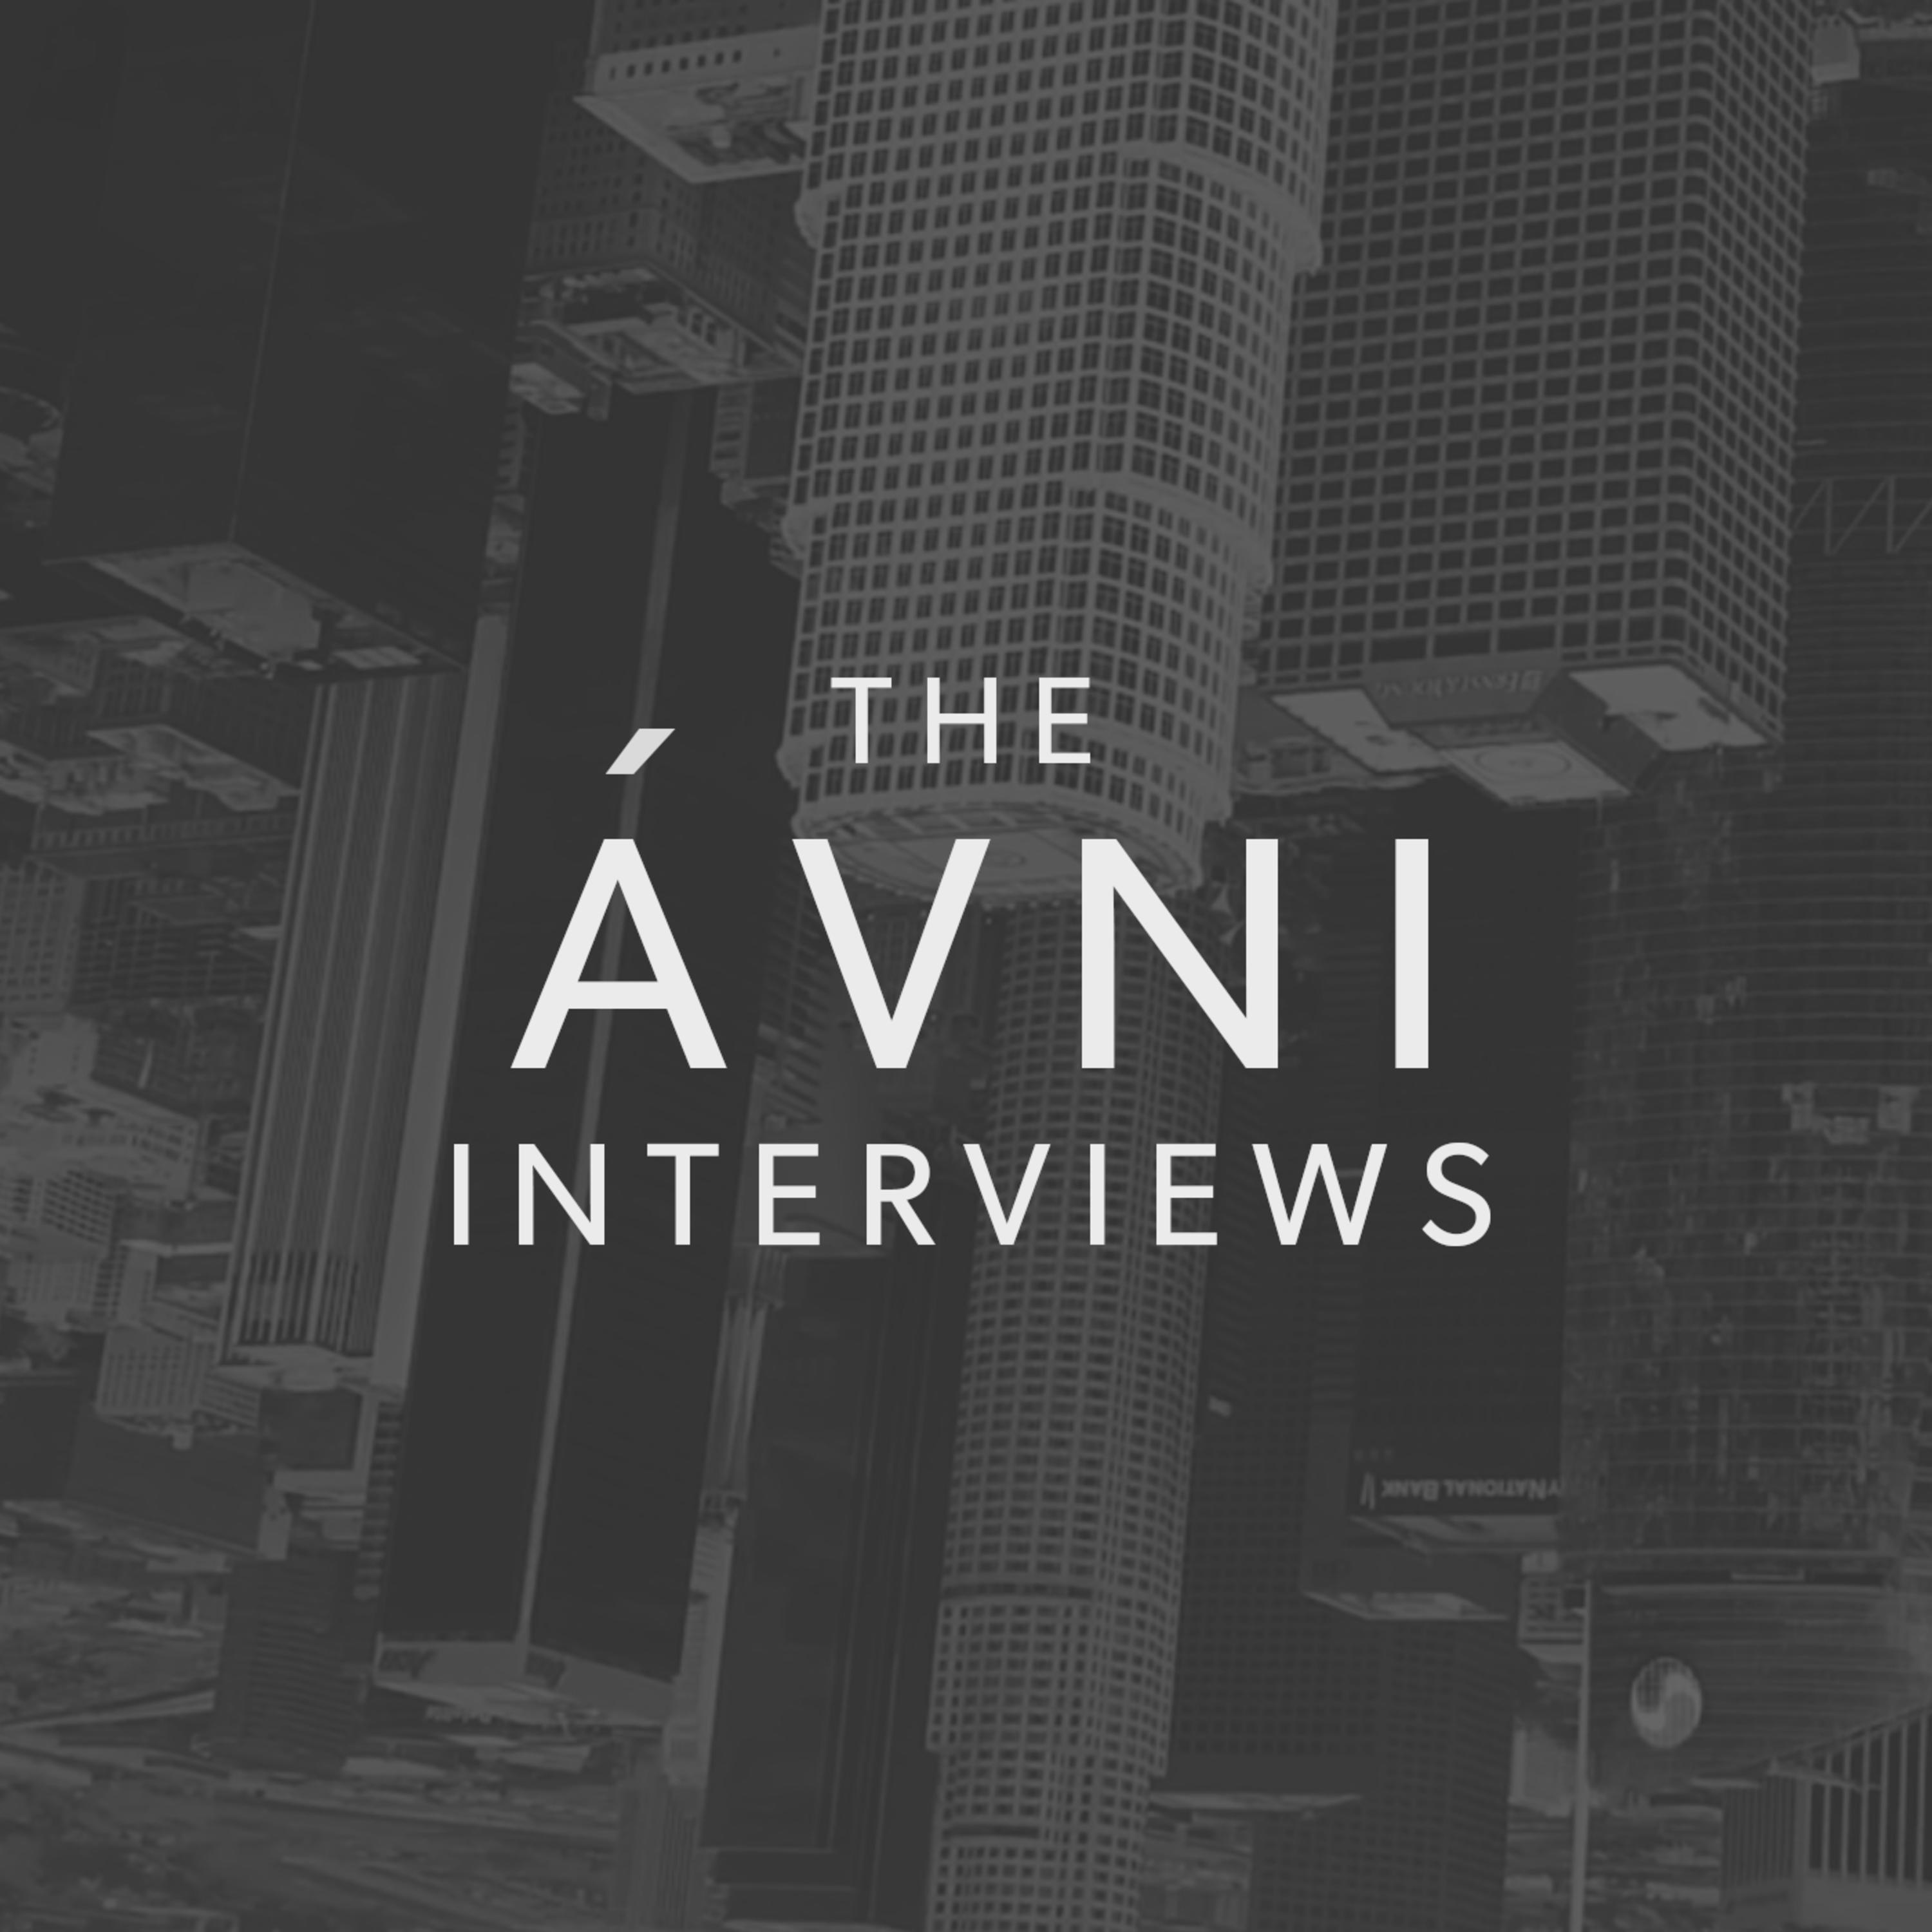 Stick with your passion no matter what: Eric Bork | AVNI Interviews 0035 by Mikey Taylor